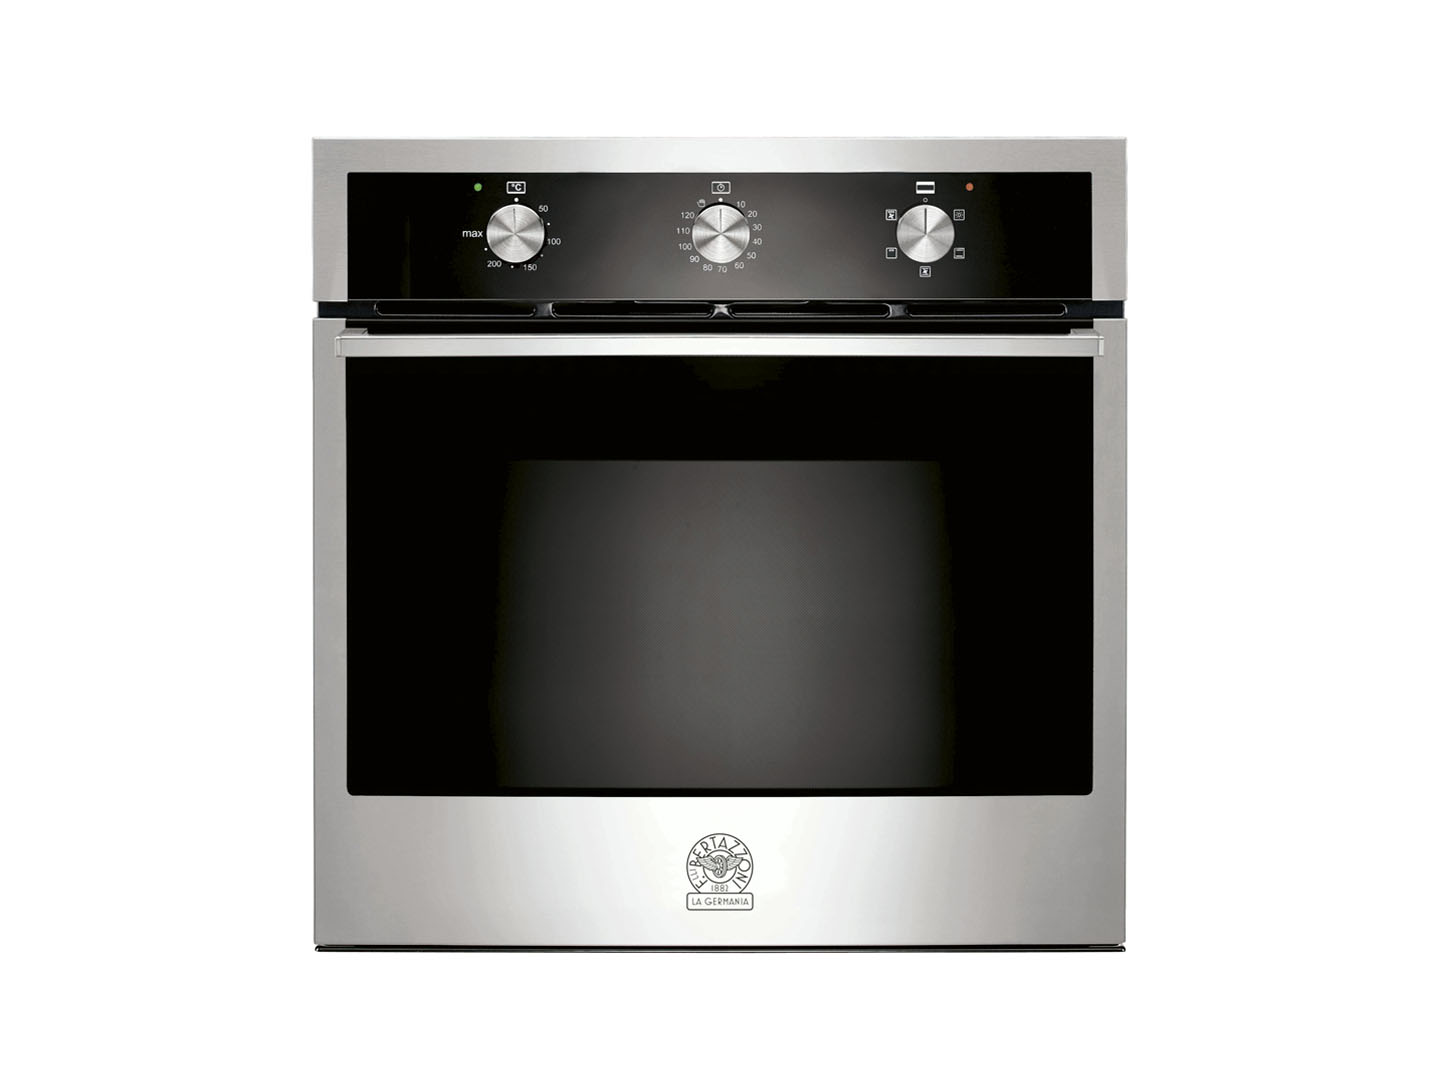 60 Forno a Gas | Bertazzoni La Germania - Stainless